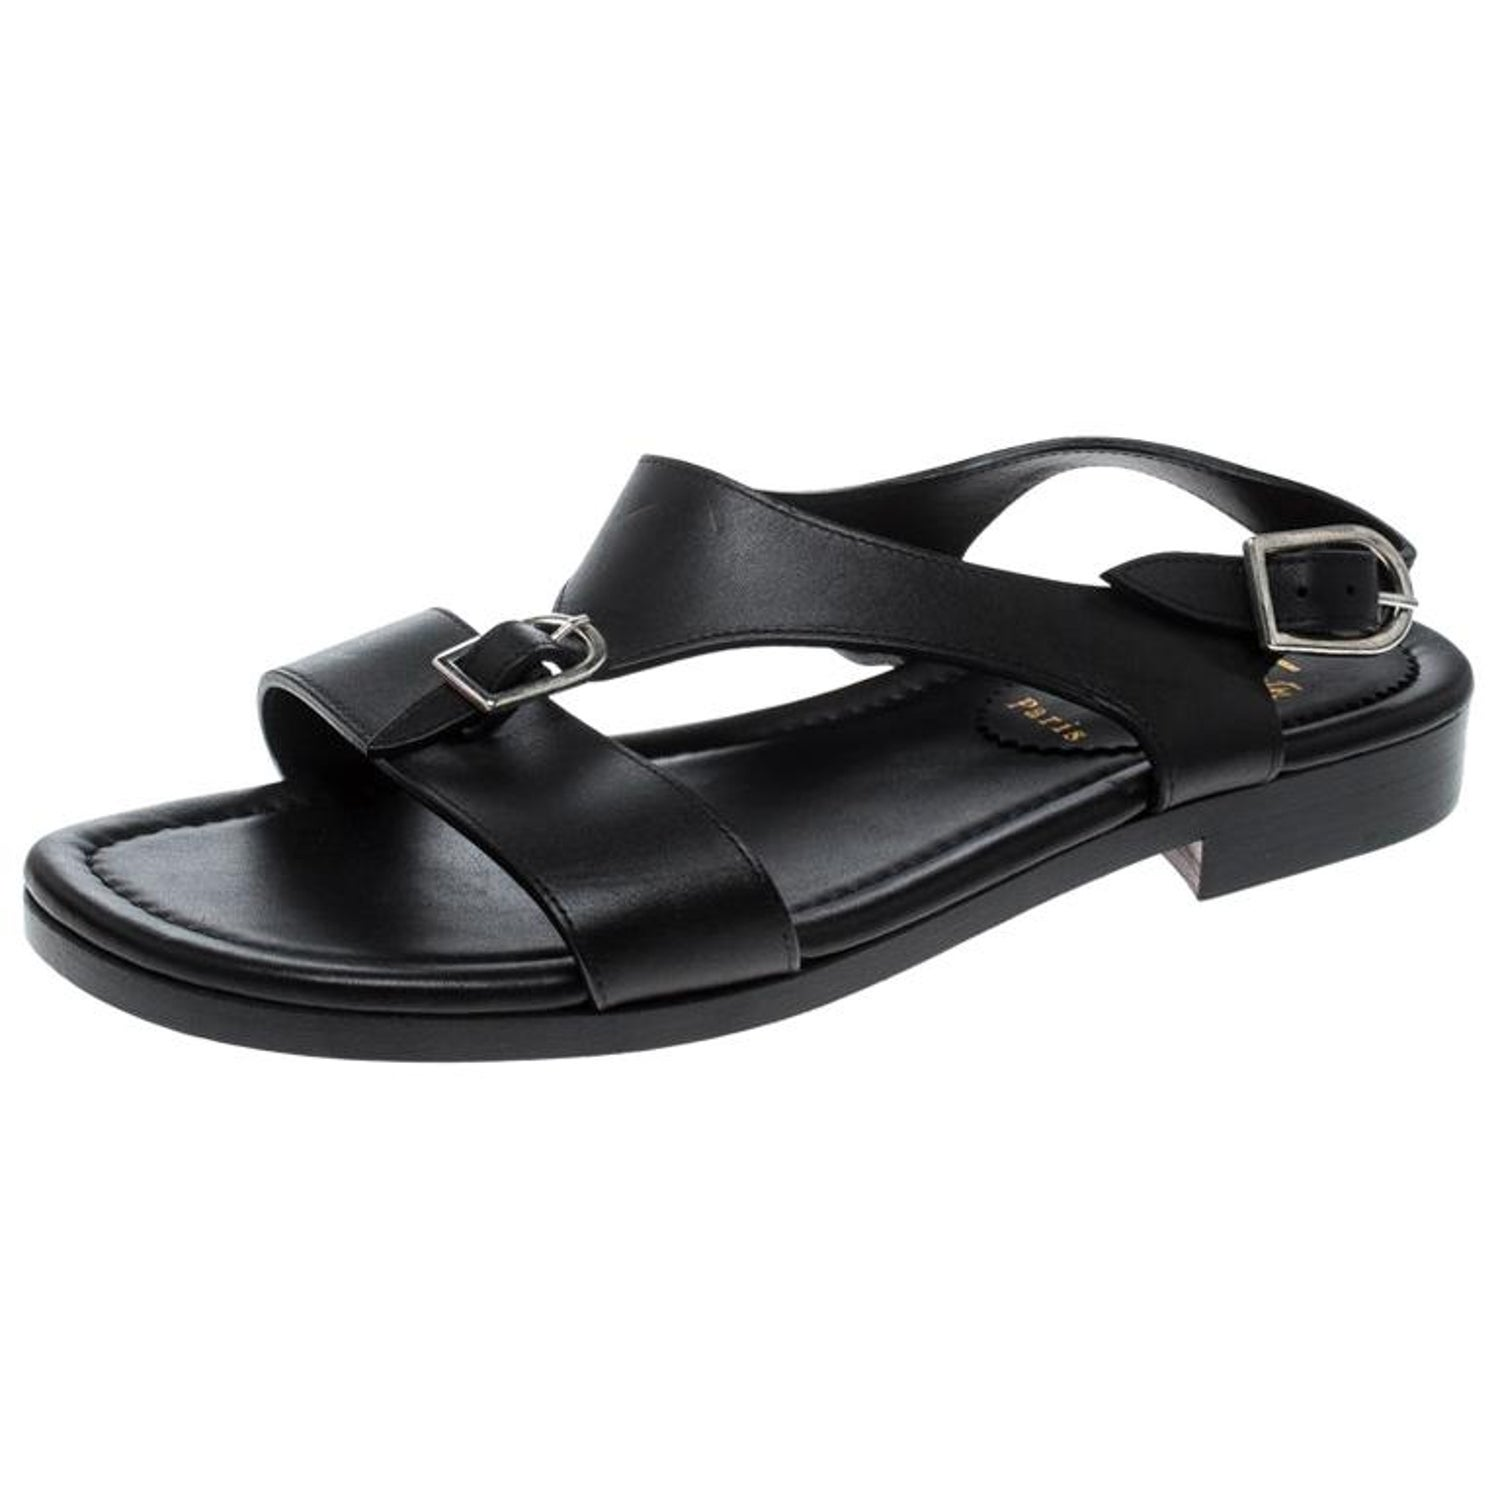 900048fa1d66 Christian Louboutin Black Leather Don Giovanni Flat Sandals Size 43 For Sale  at 1stdibs